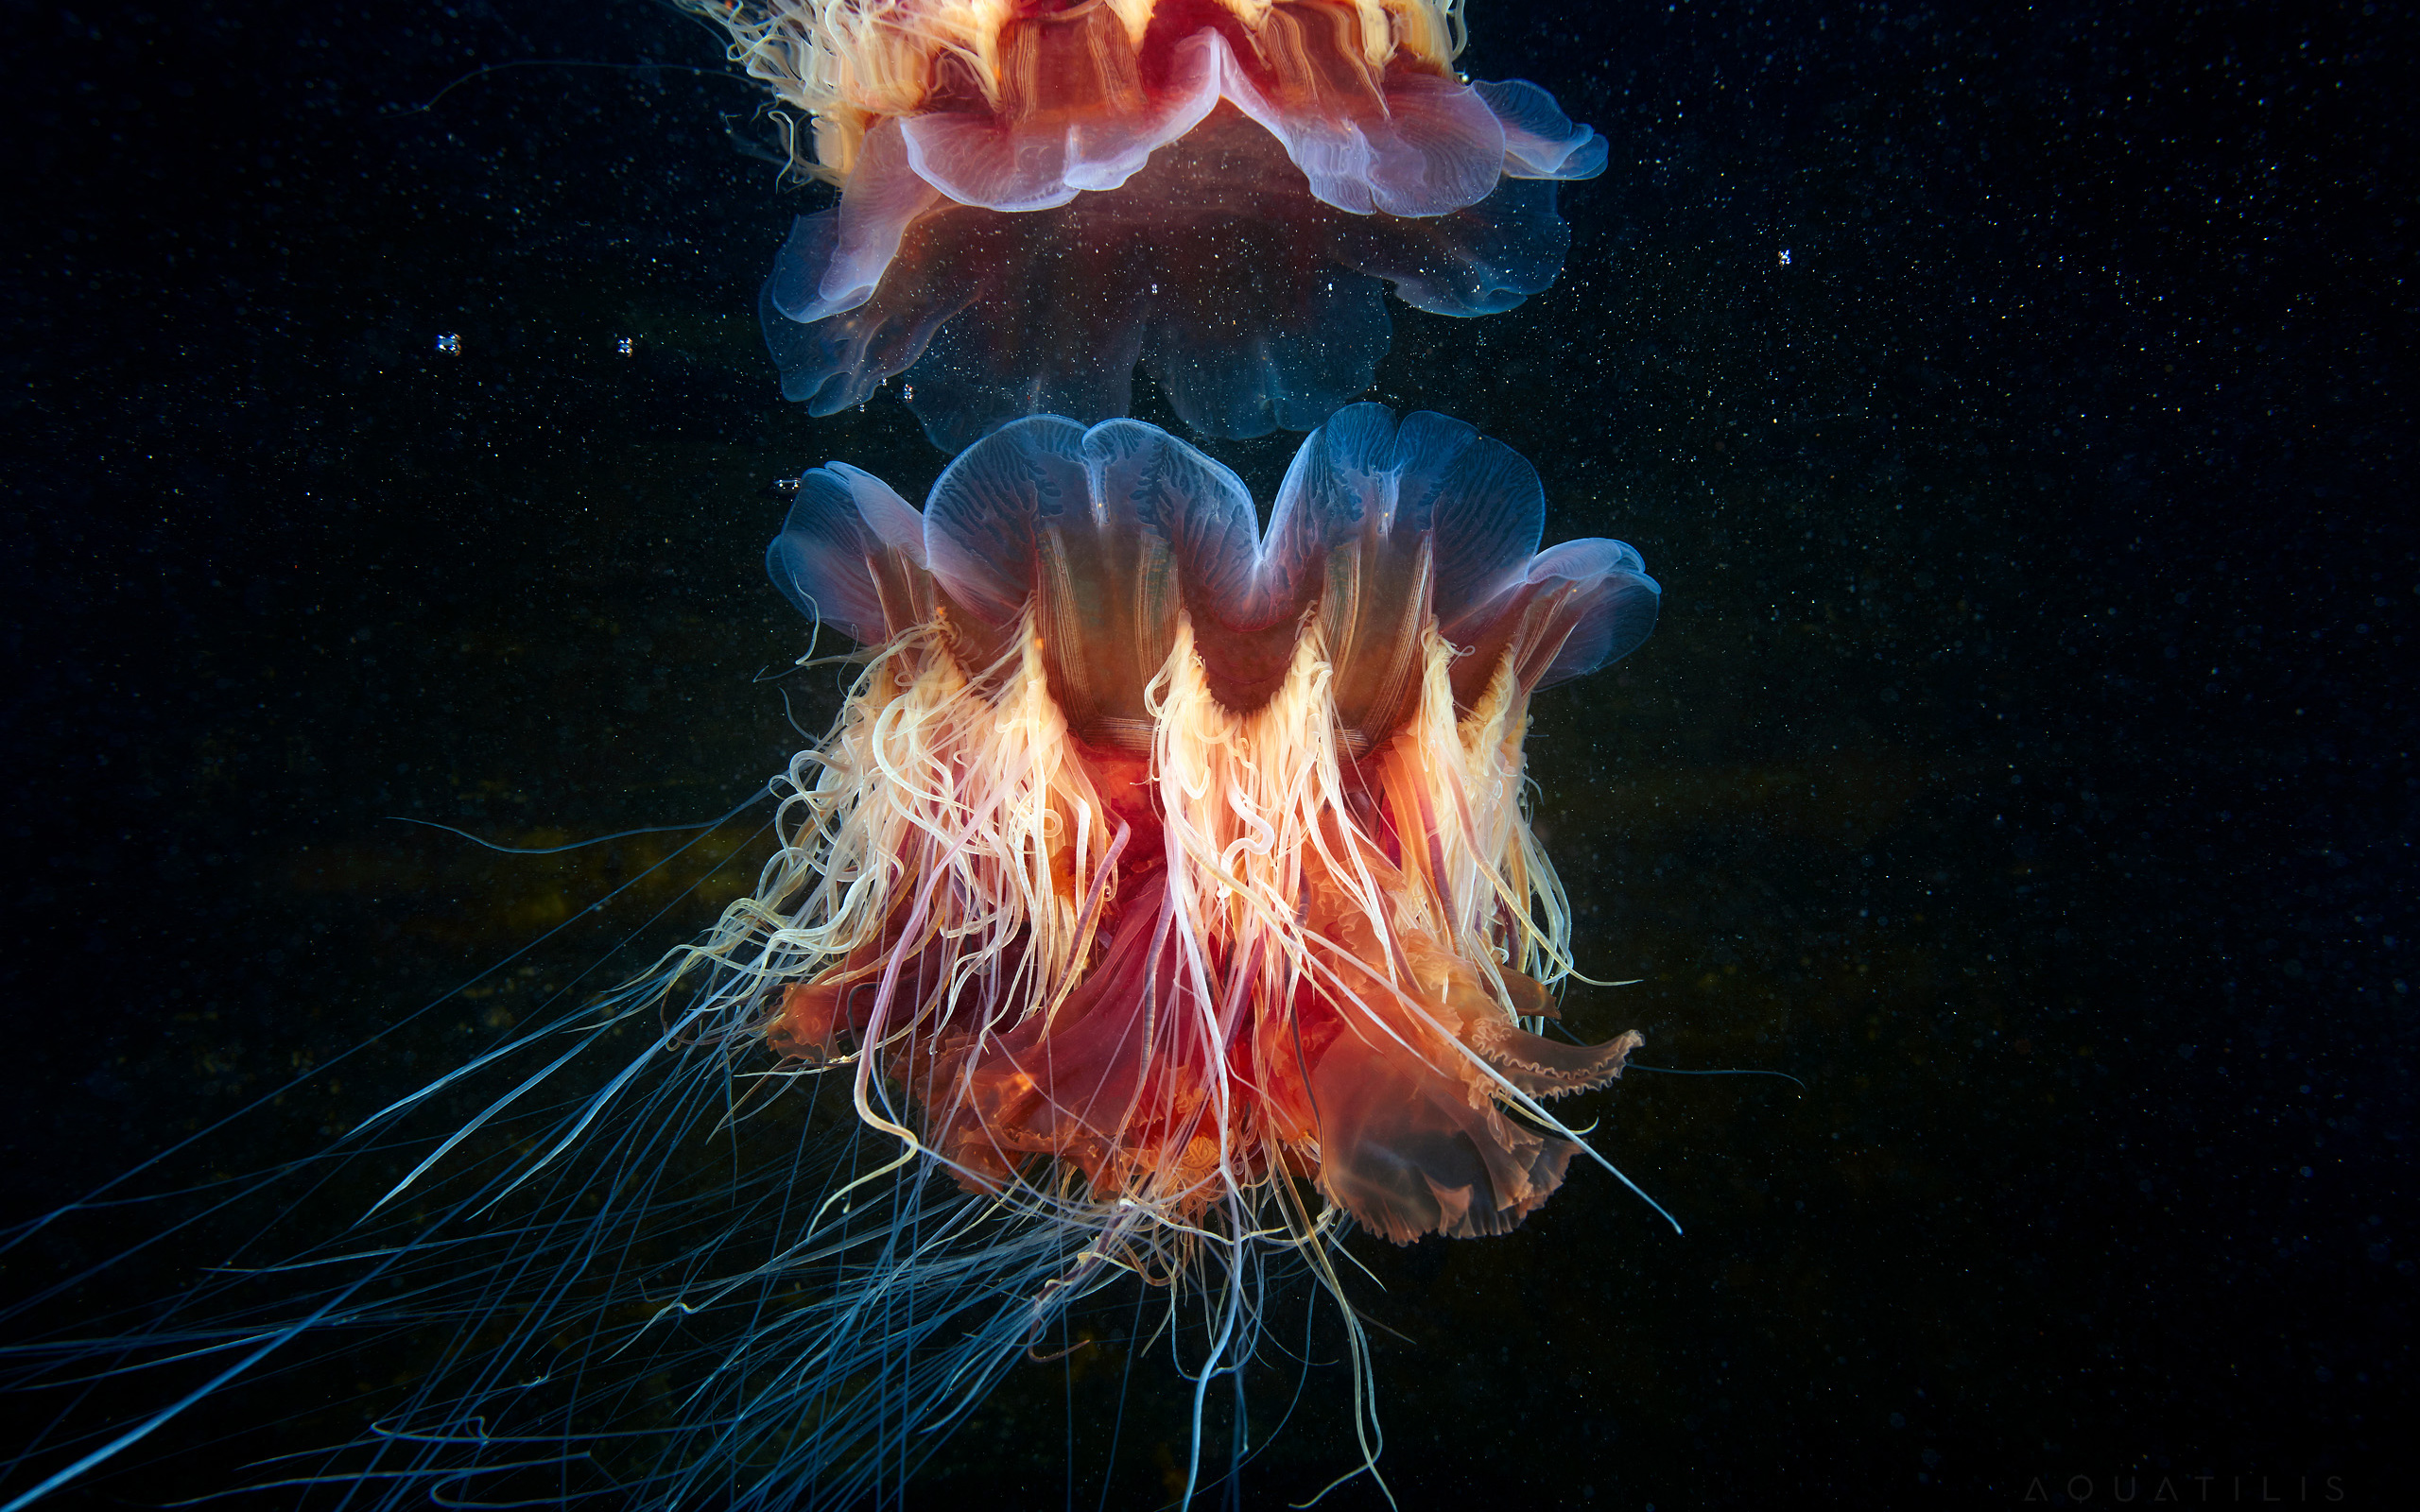 Lions mane Jellyfish605127681 - Lions mane Jellyfish - mane, Lions, Jellyfish, and